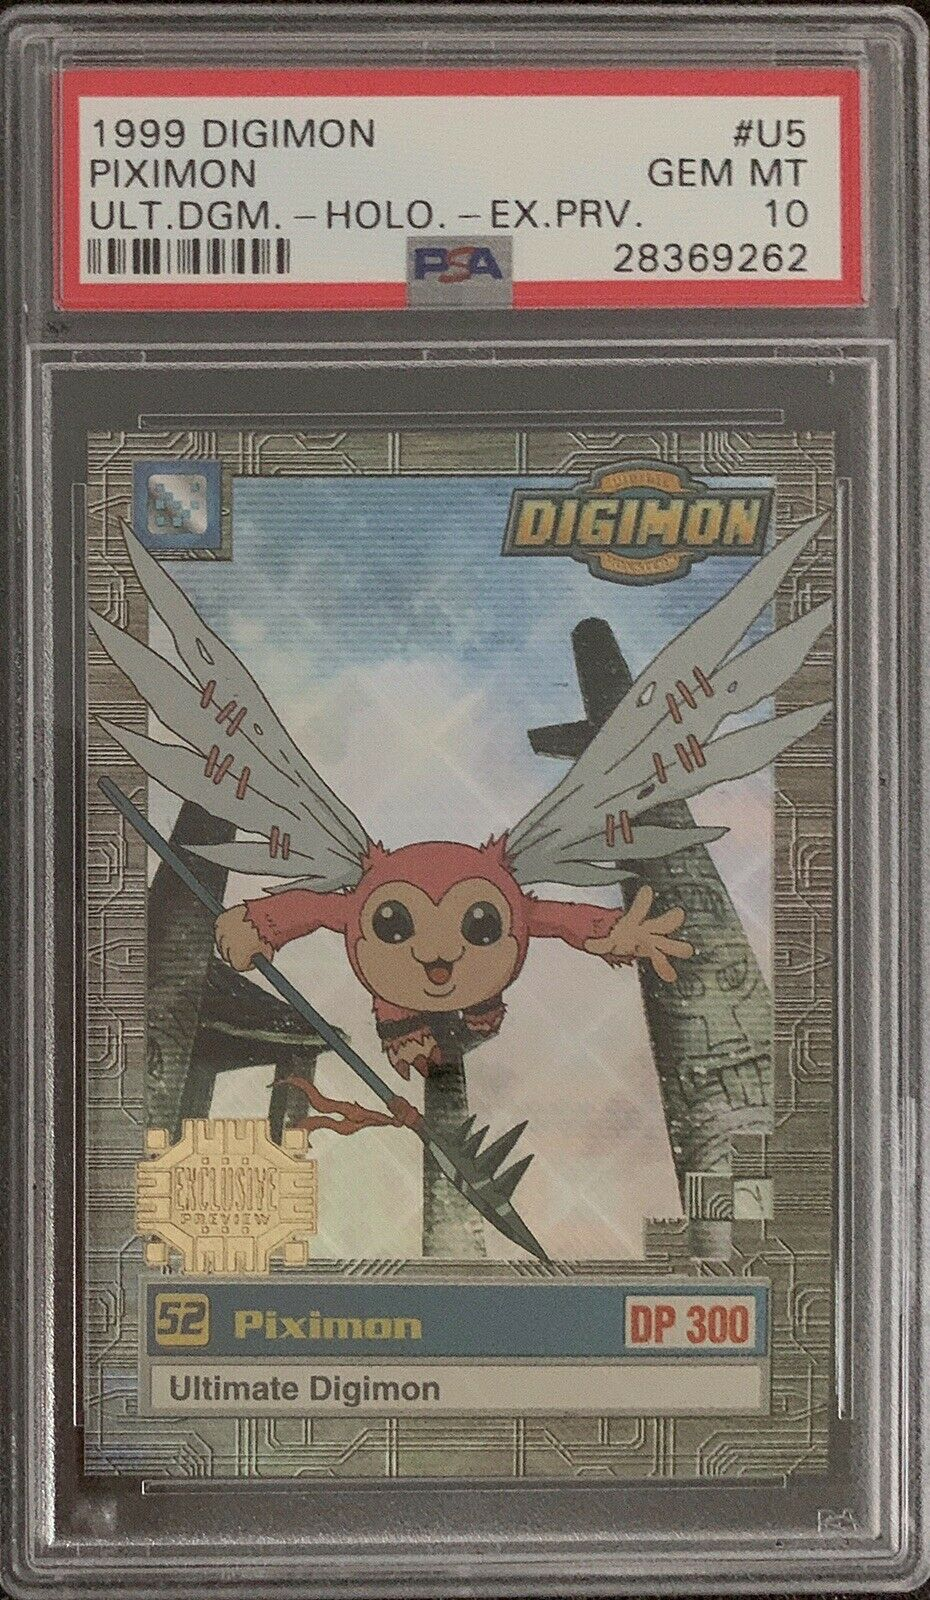 1999 Digimon Animated Series, Piximon-Holo Exclusive Preview  U5 PSA 10